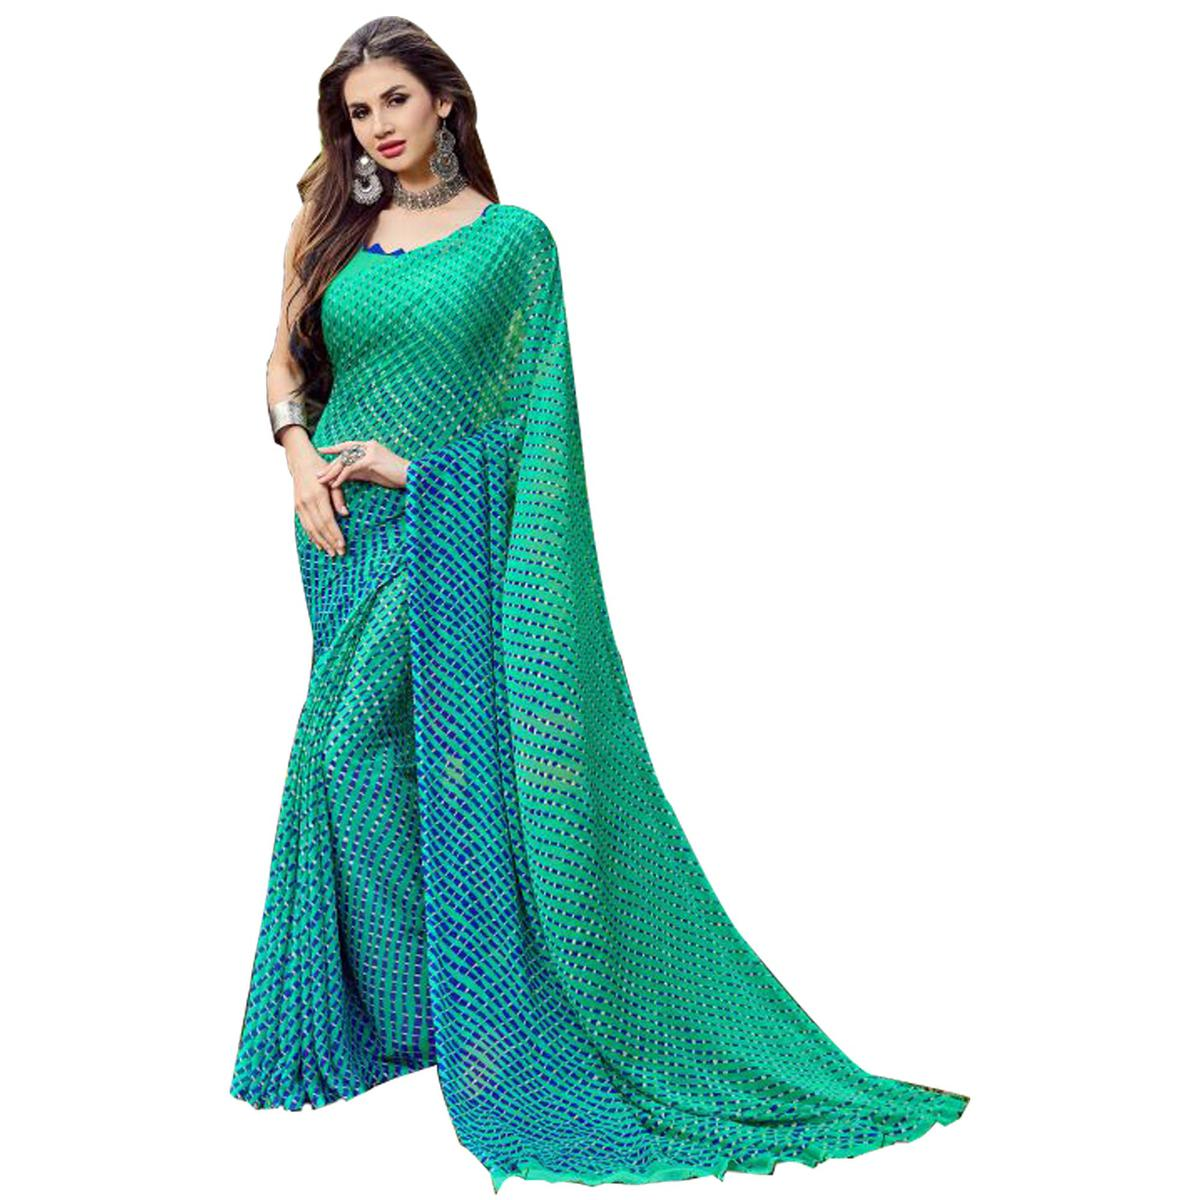 Desiring Turquoise Green Colored Casual Printed Chiffon Saree